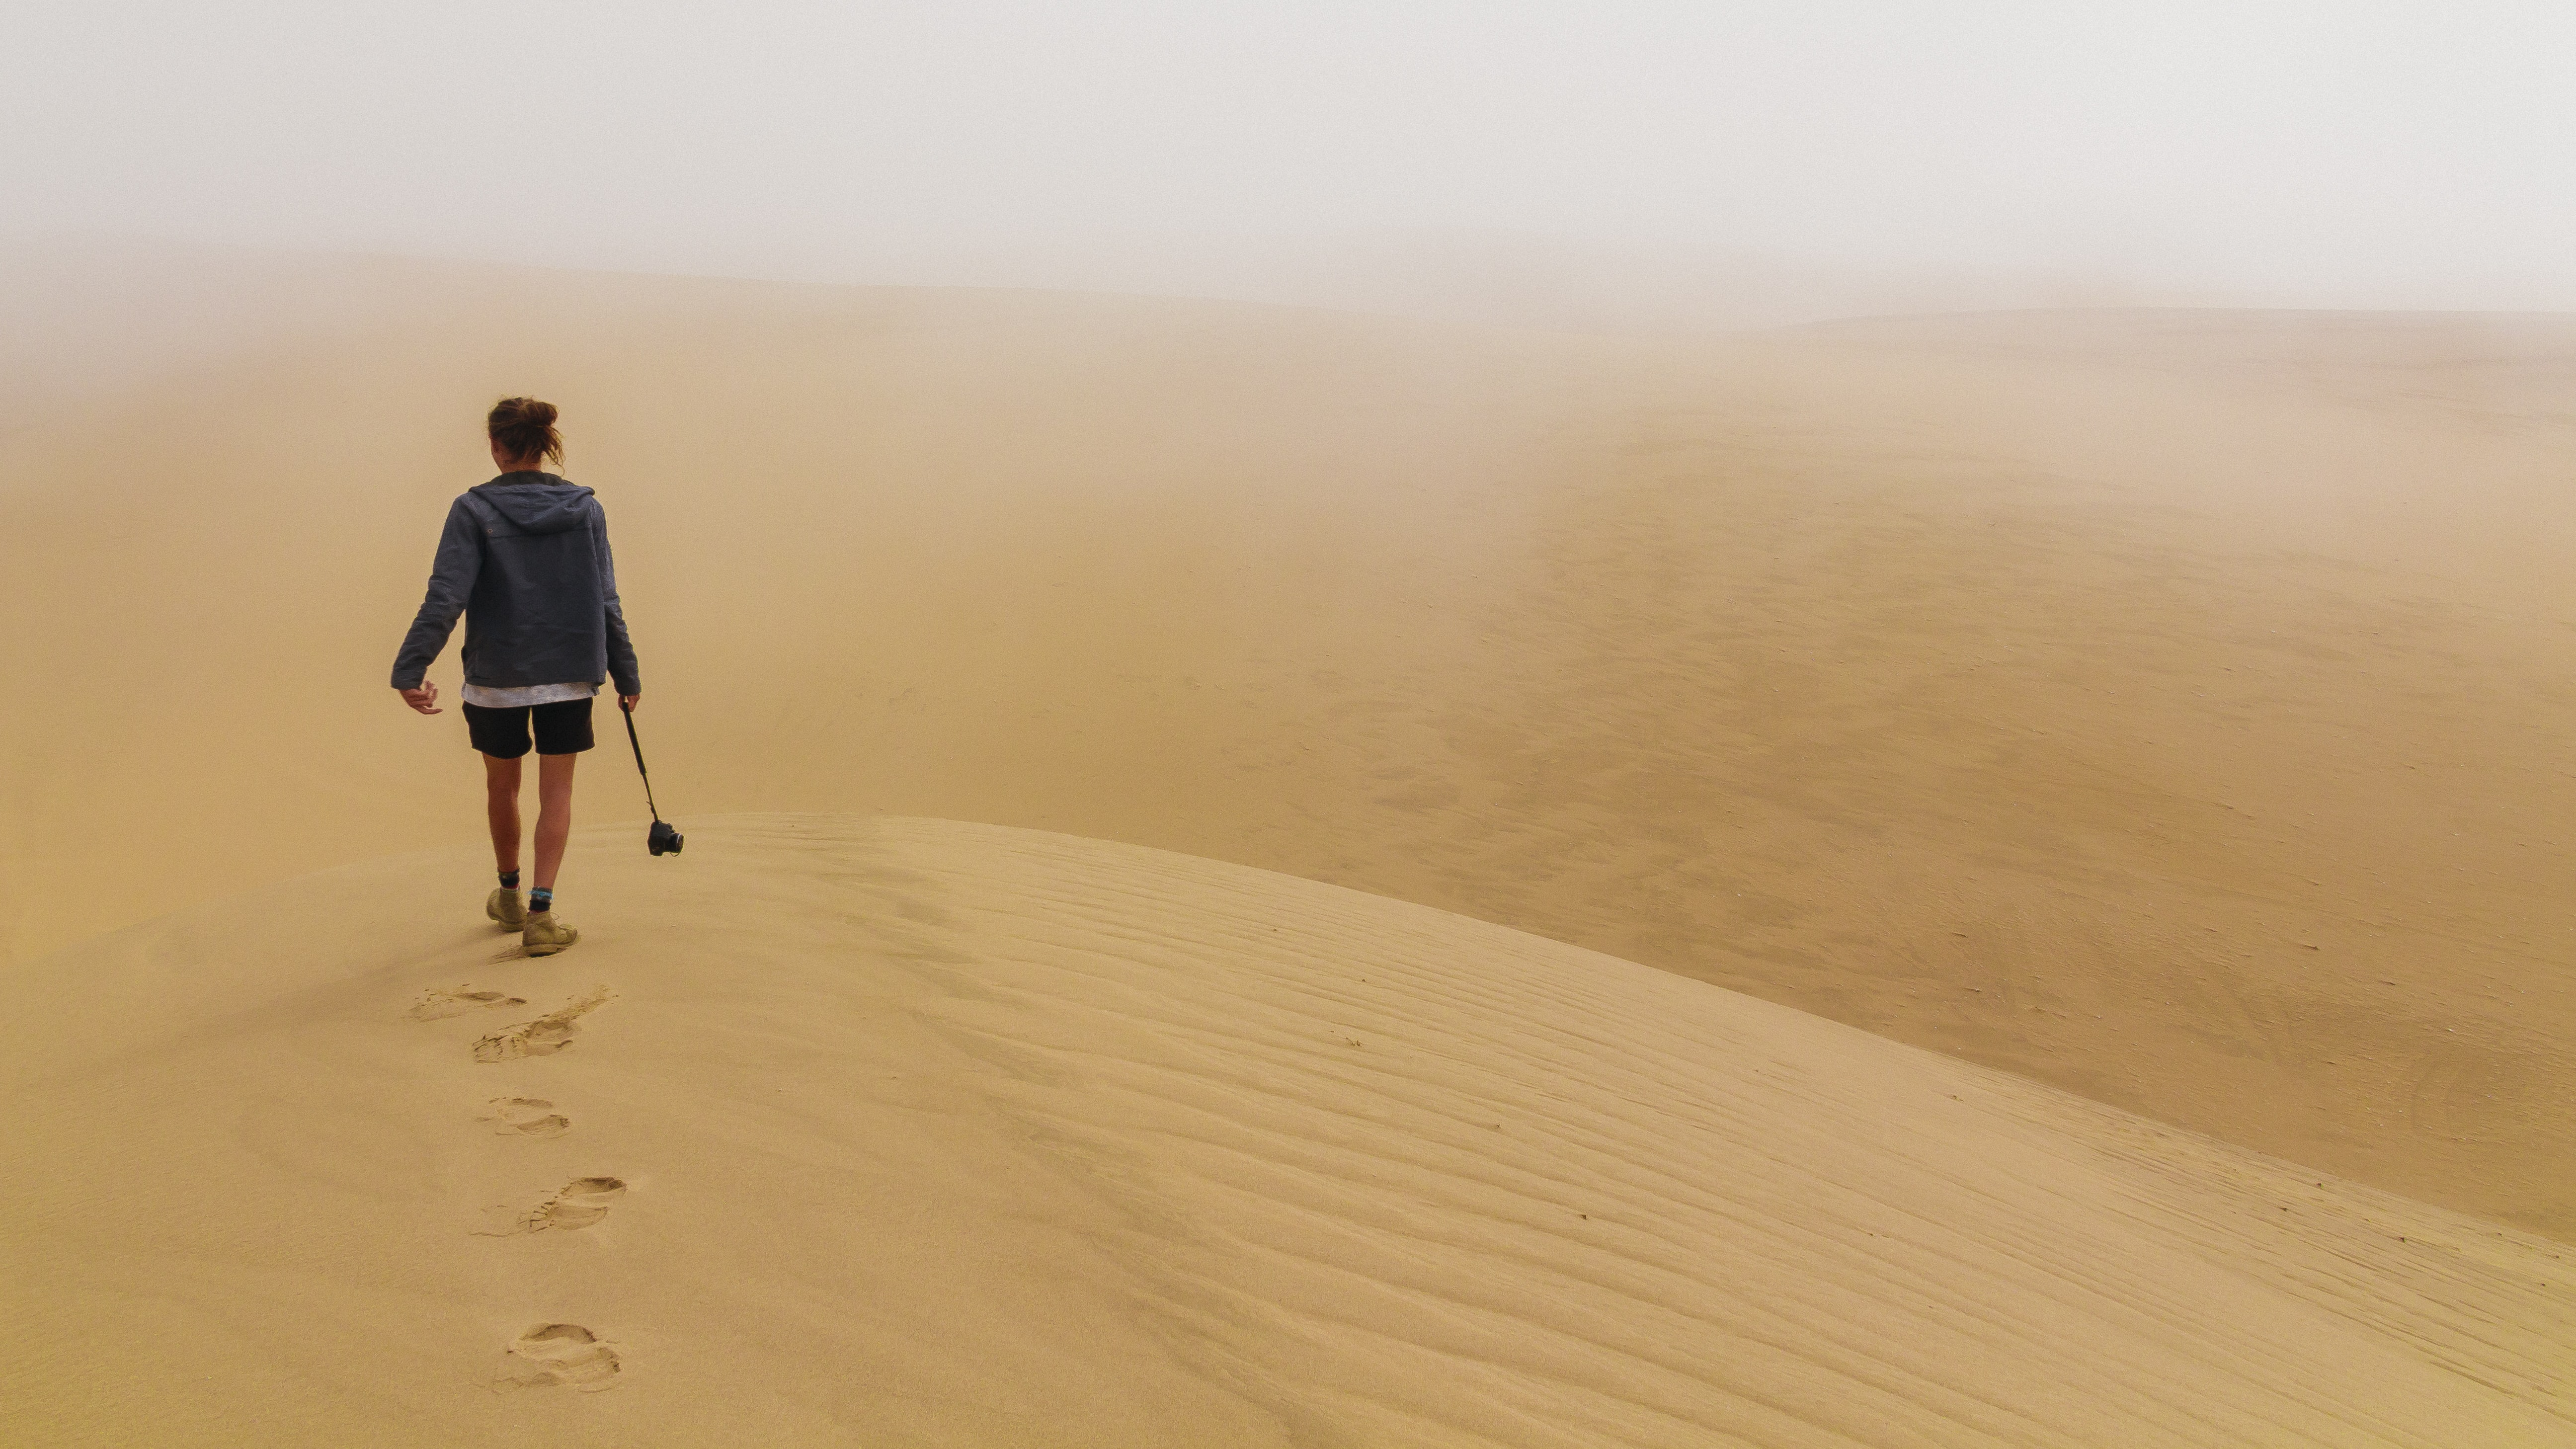 person walking desert place